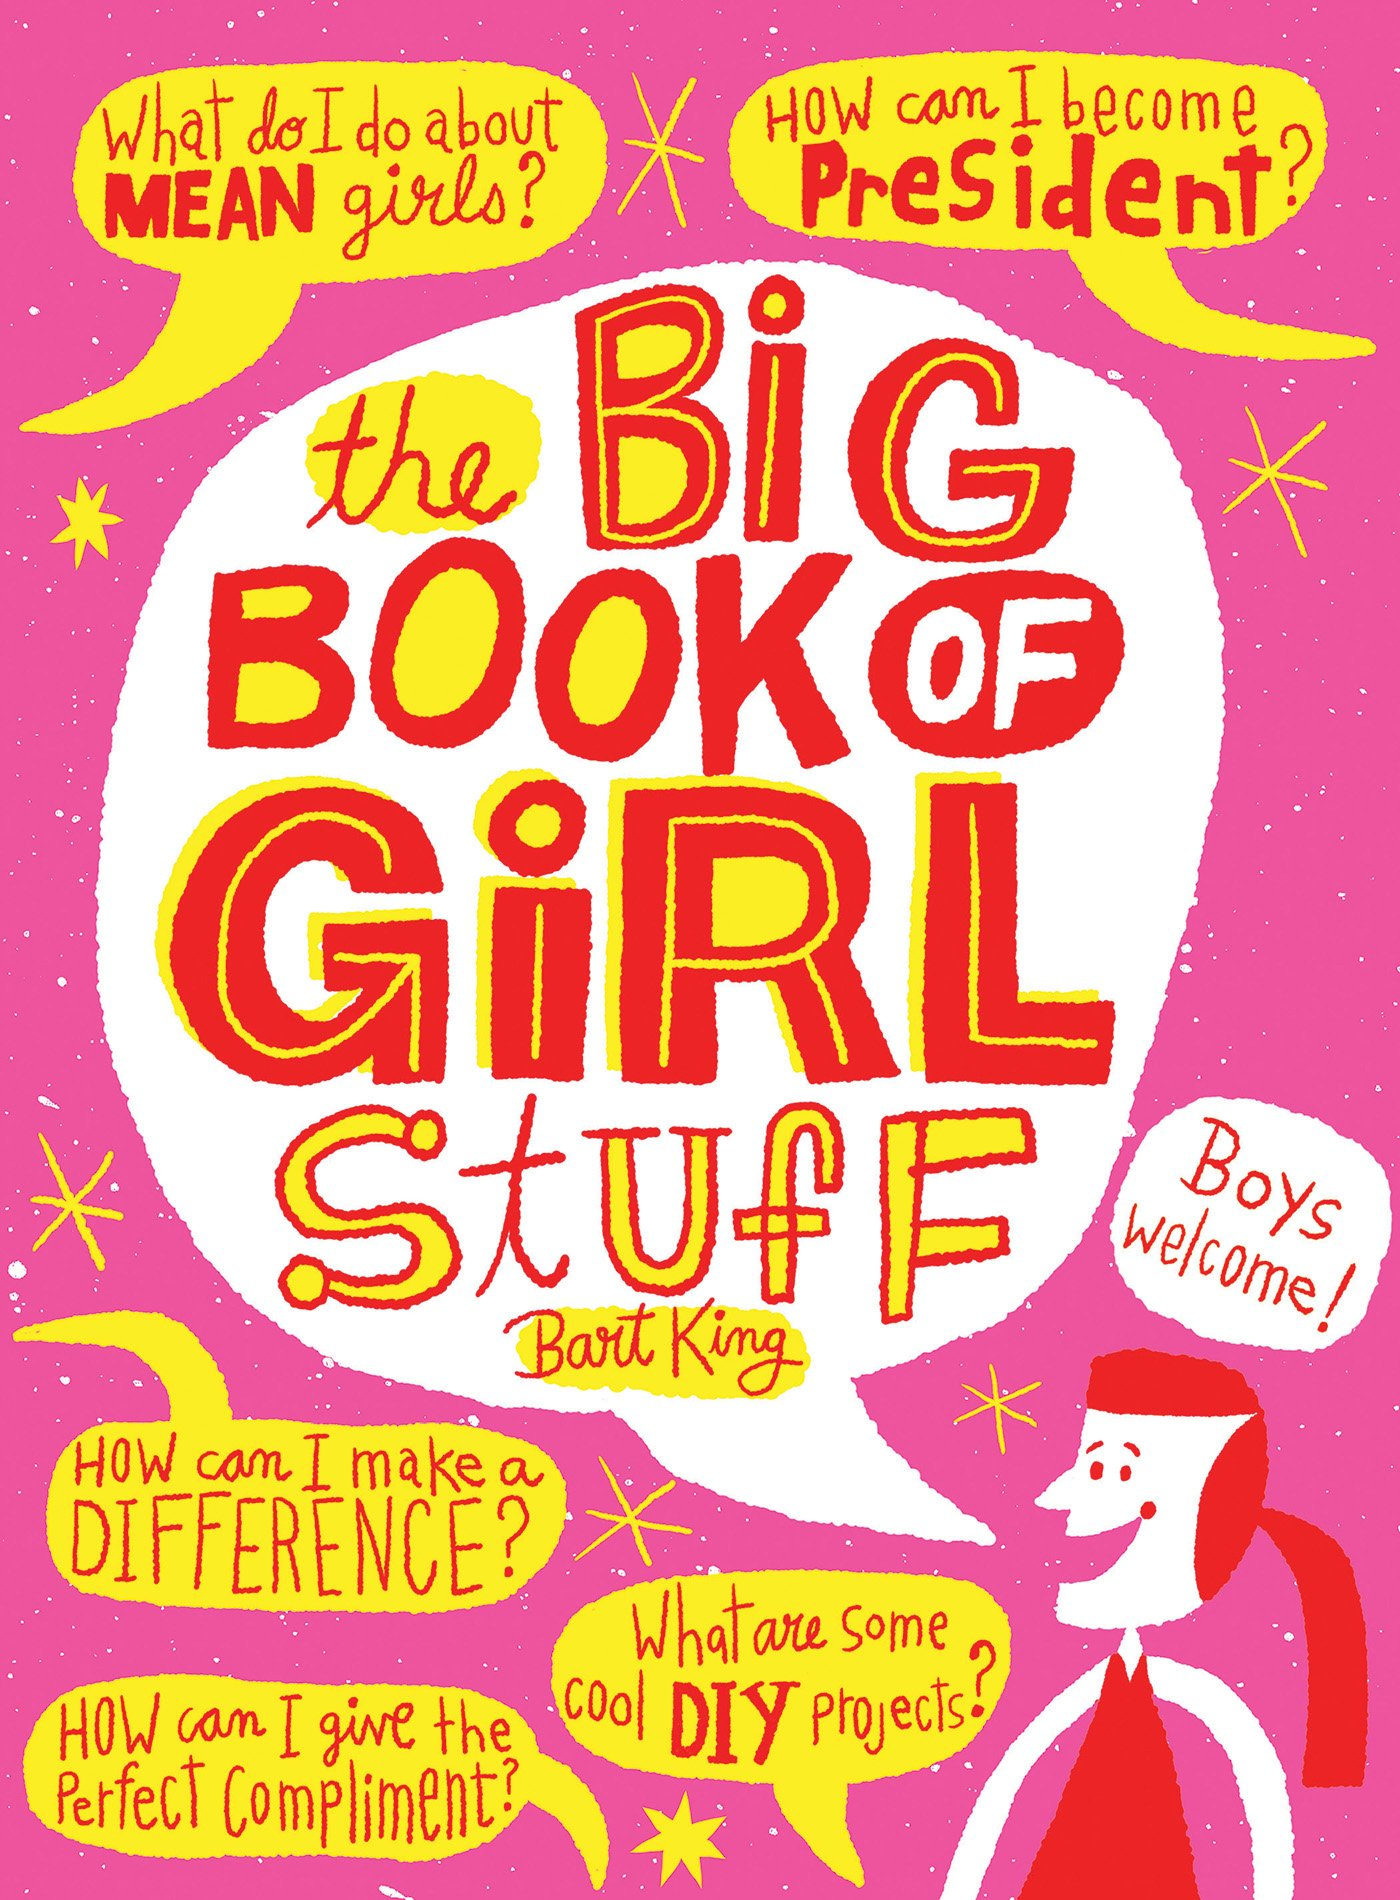 The Big Book of Girl Stuff: Bart King, Jennifer Kalis: 9781423637622 ...